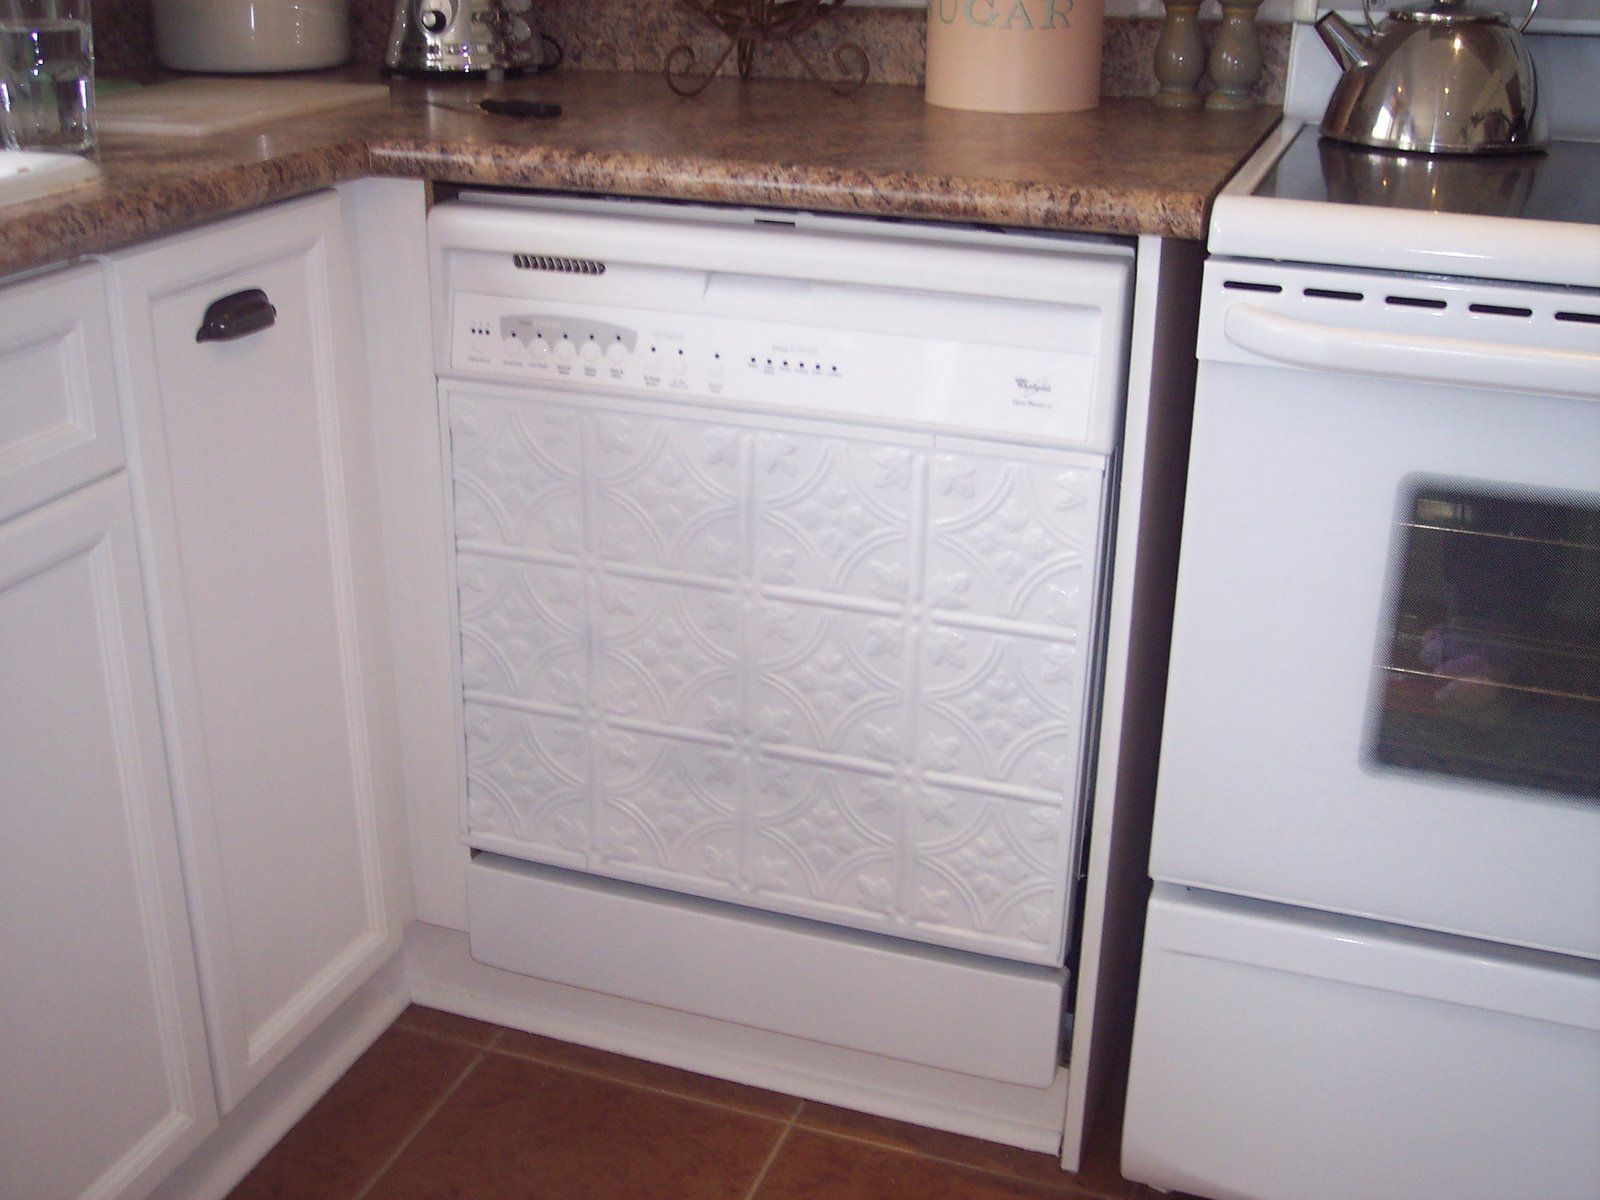 Not That I Want To Tintile A Dishwasher But I Like The Idea Of